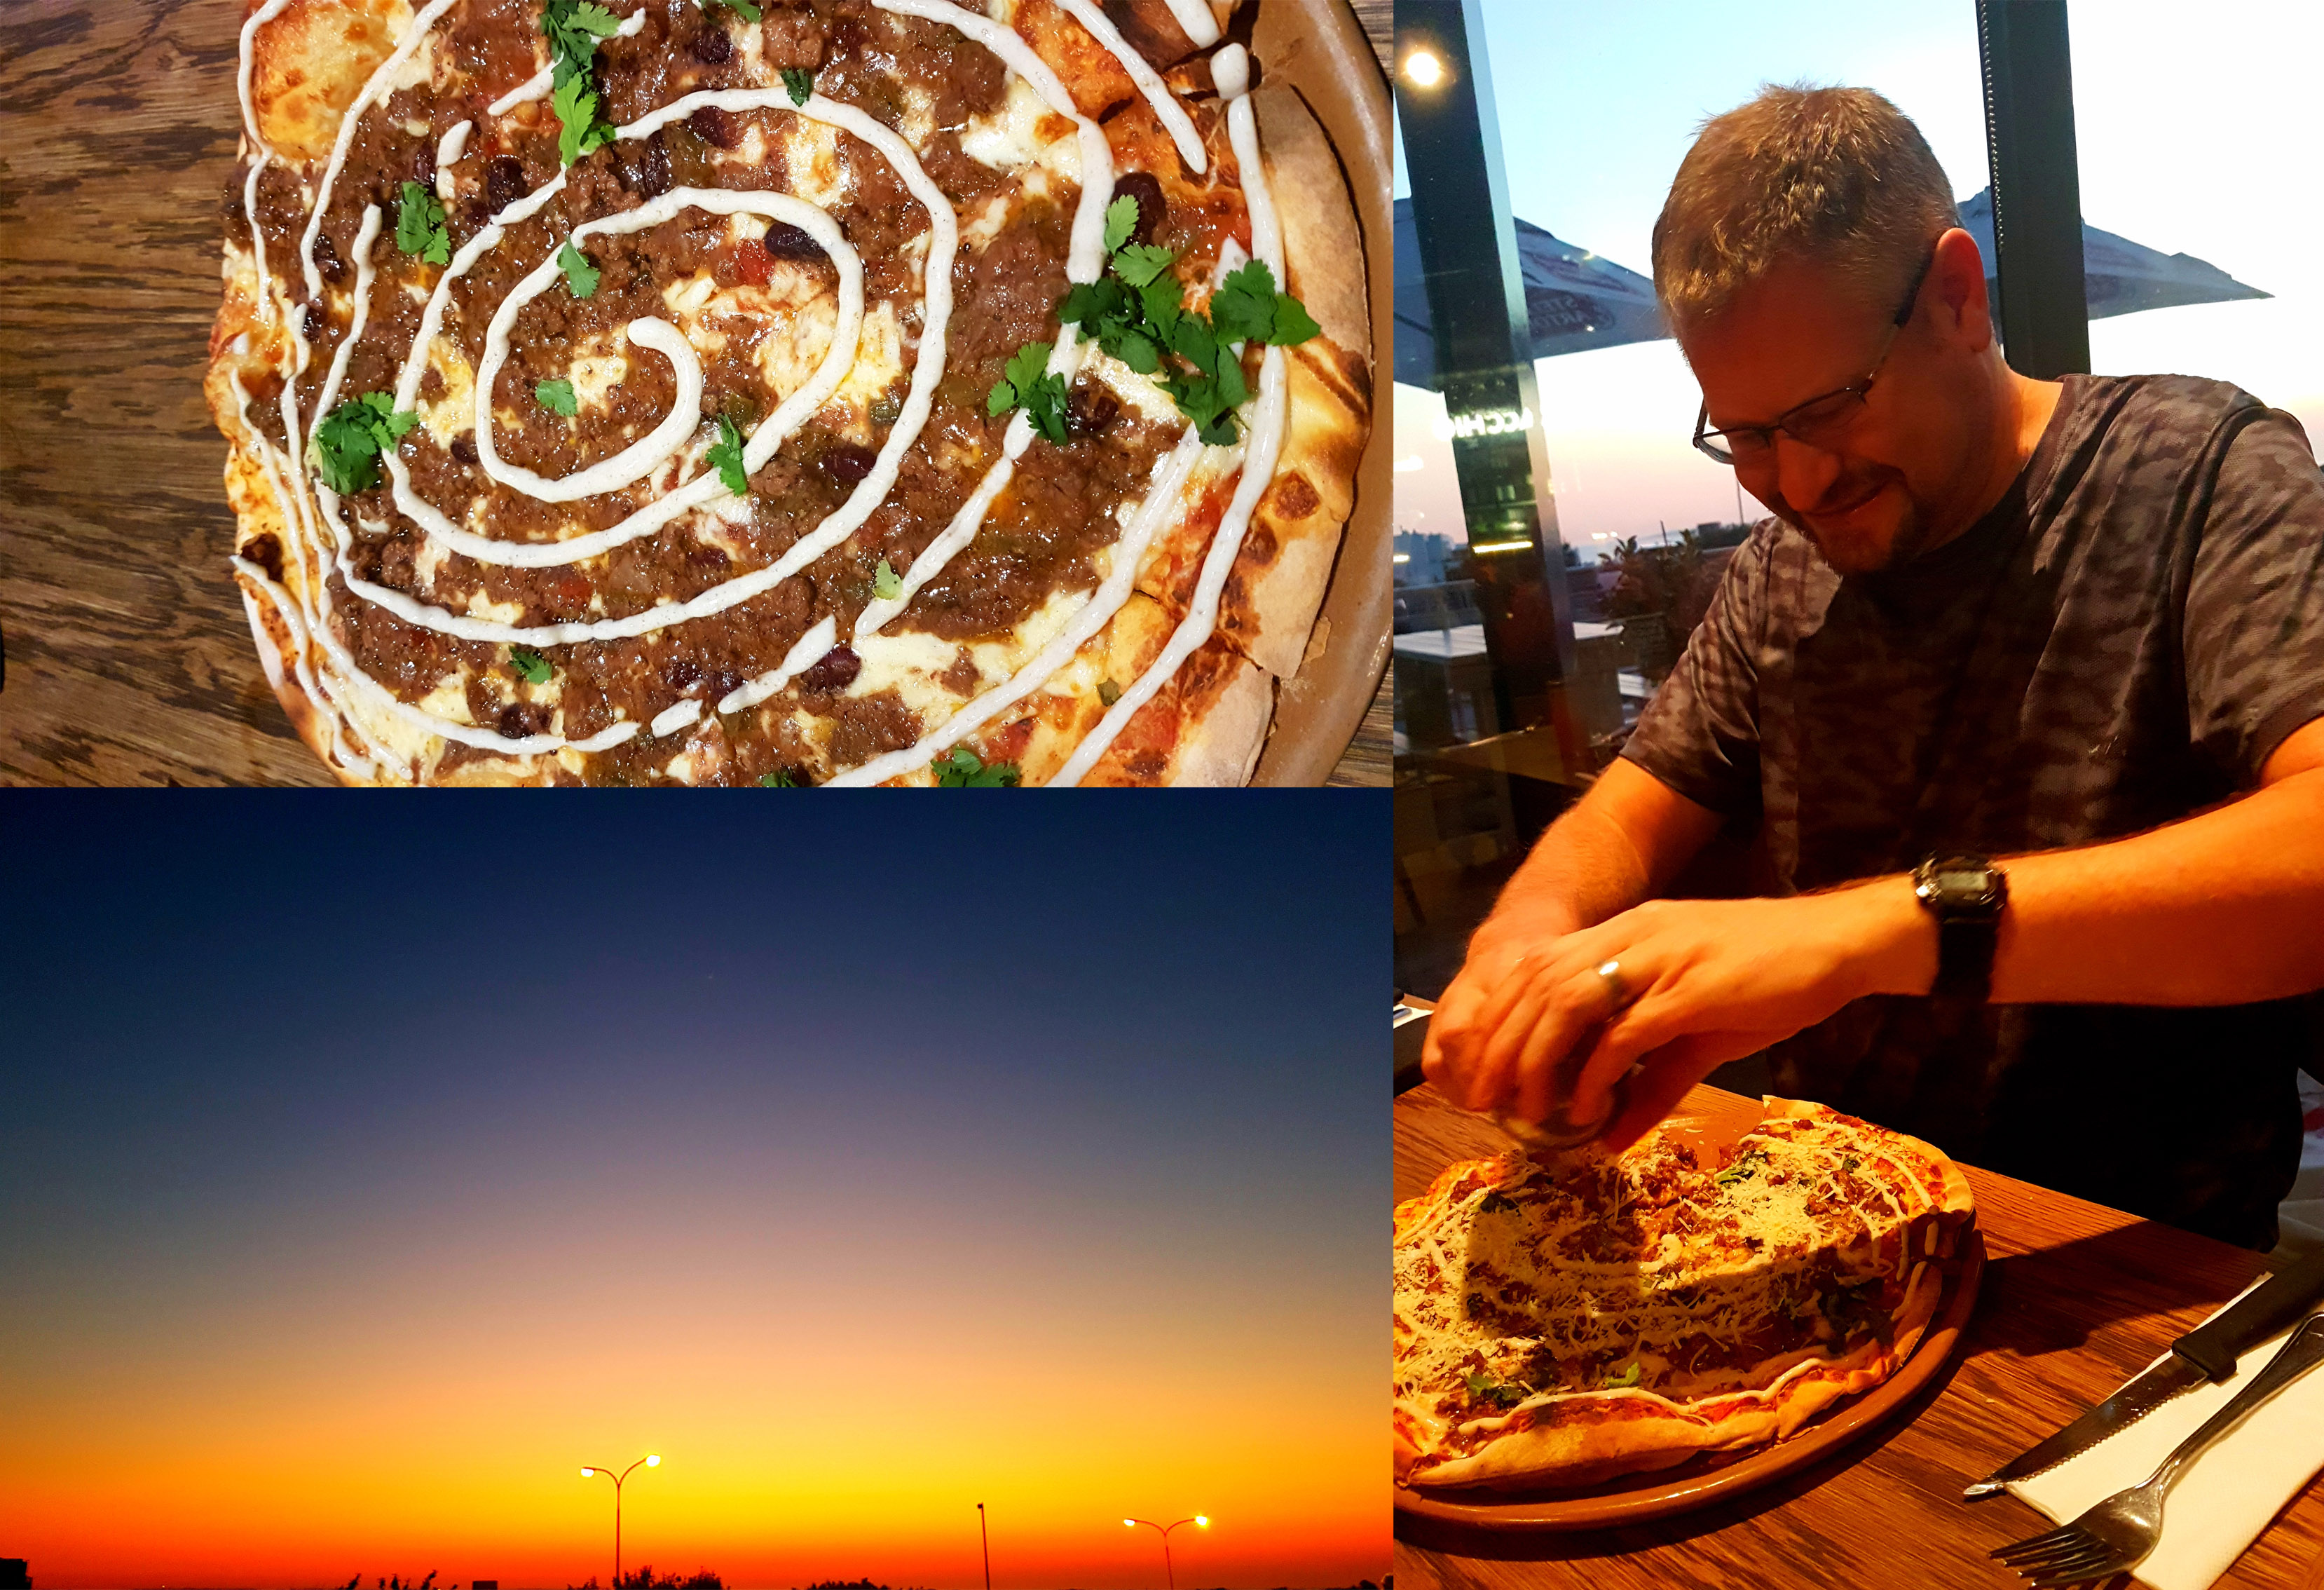 By Saturday evening we were a little peckish again so see the Otomi (chilli con carne, coriander, spiced yoghurt) pizza we shared at Col'cacchio, Seaside Village. Also see the sunset over the sea.